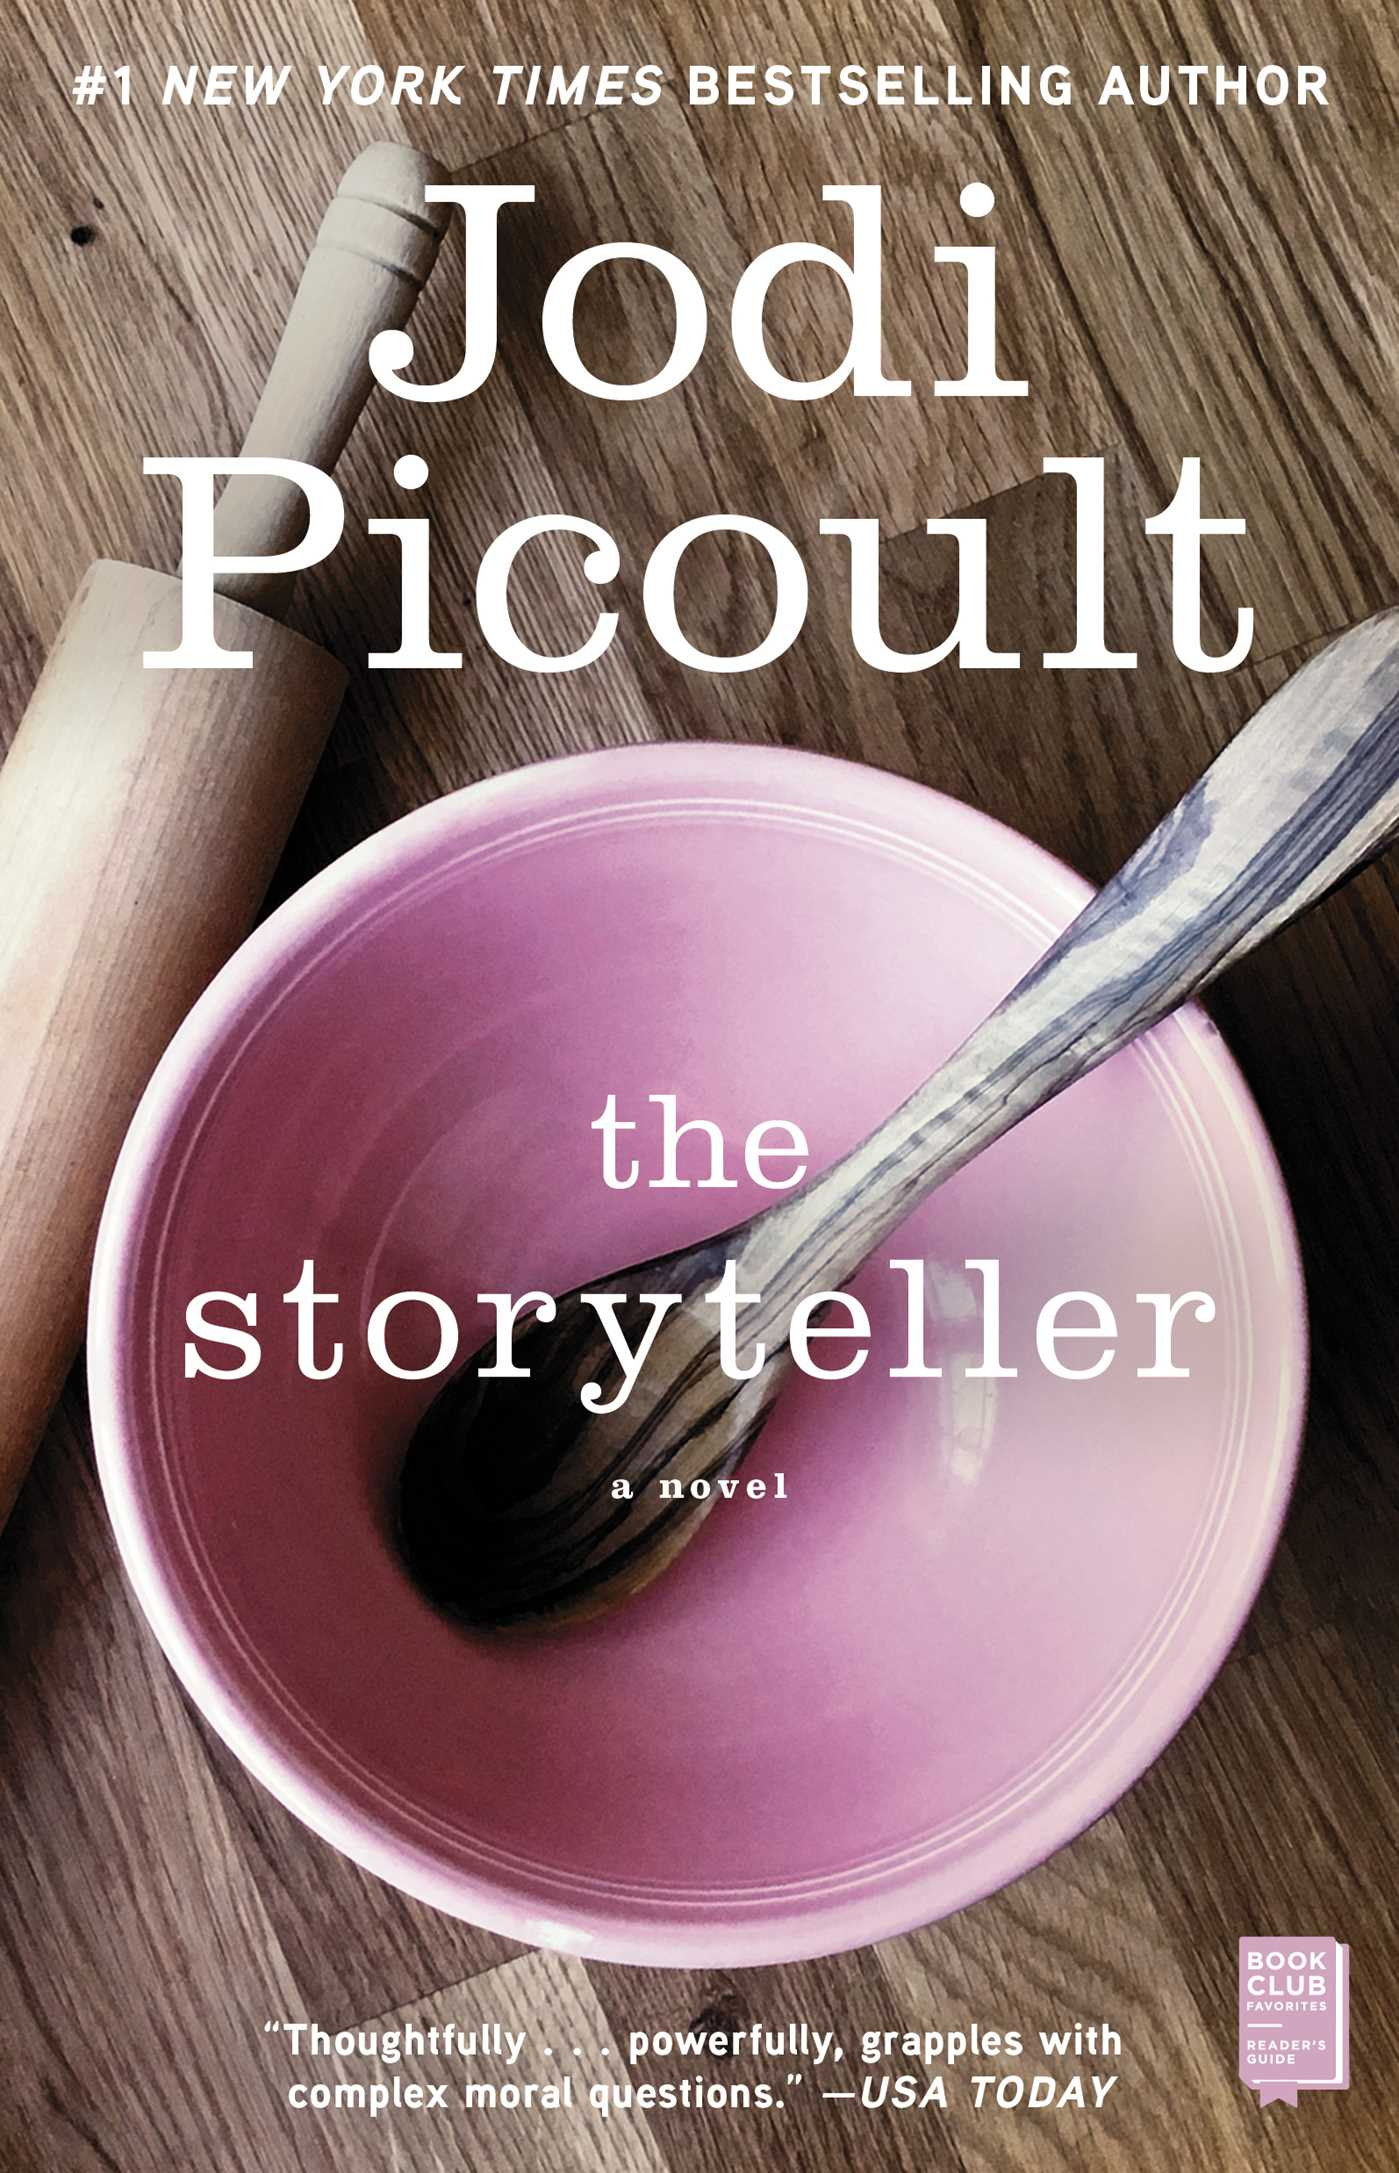 The Storyteller | Book by Jodi Picoult | Official Publisher Page